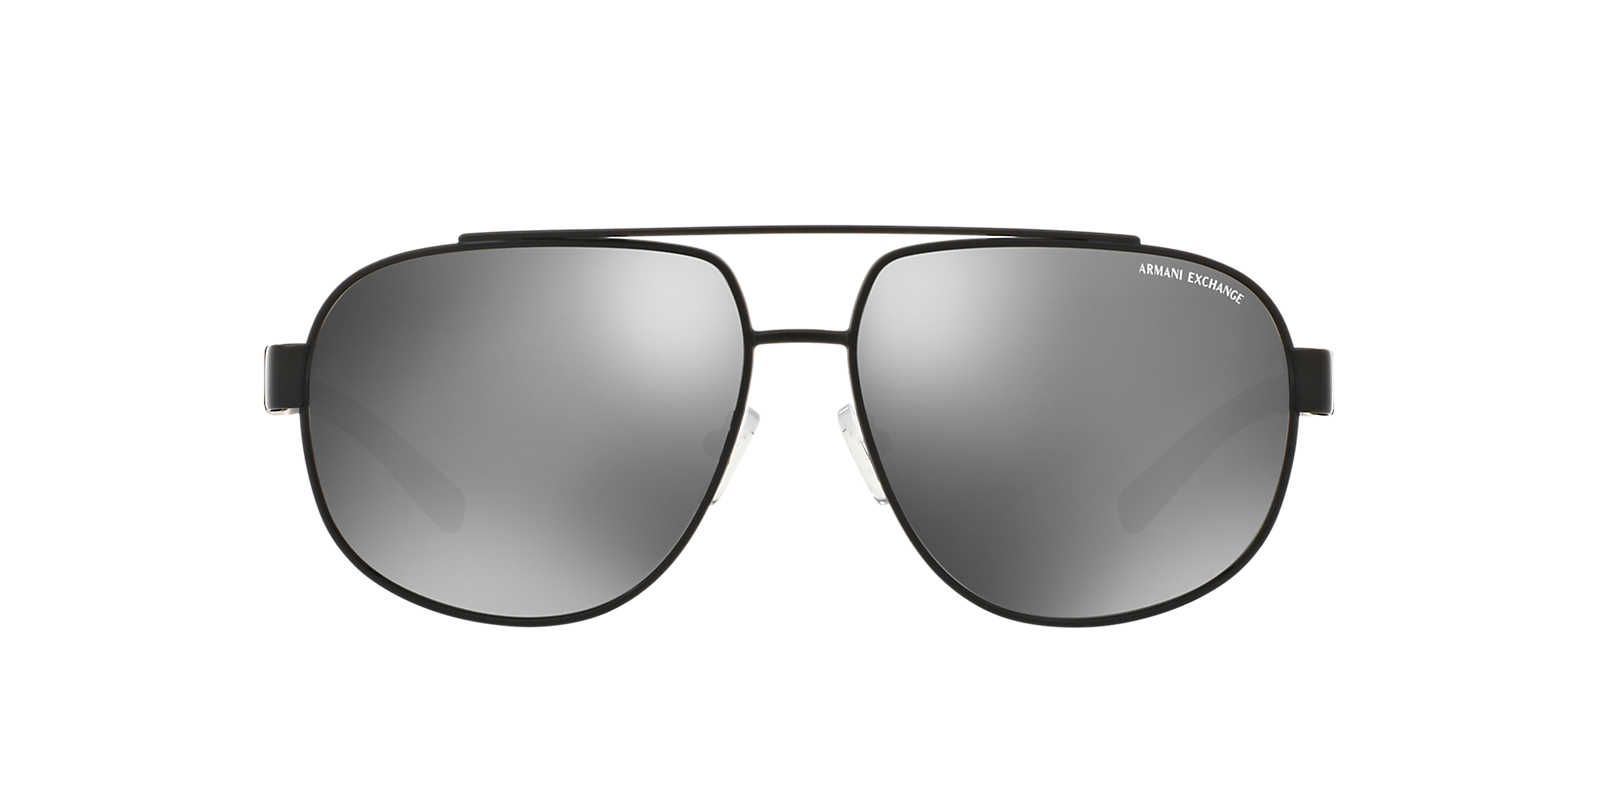 black aviator sunglasses online  Armani Exchange